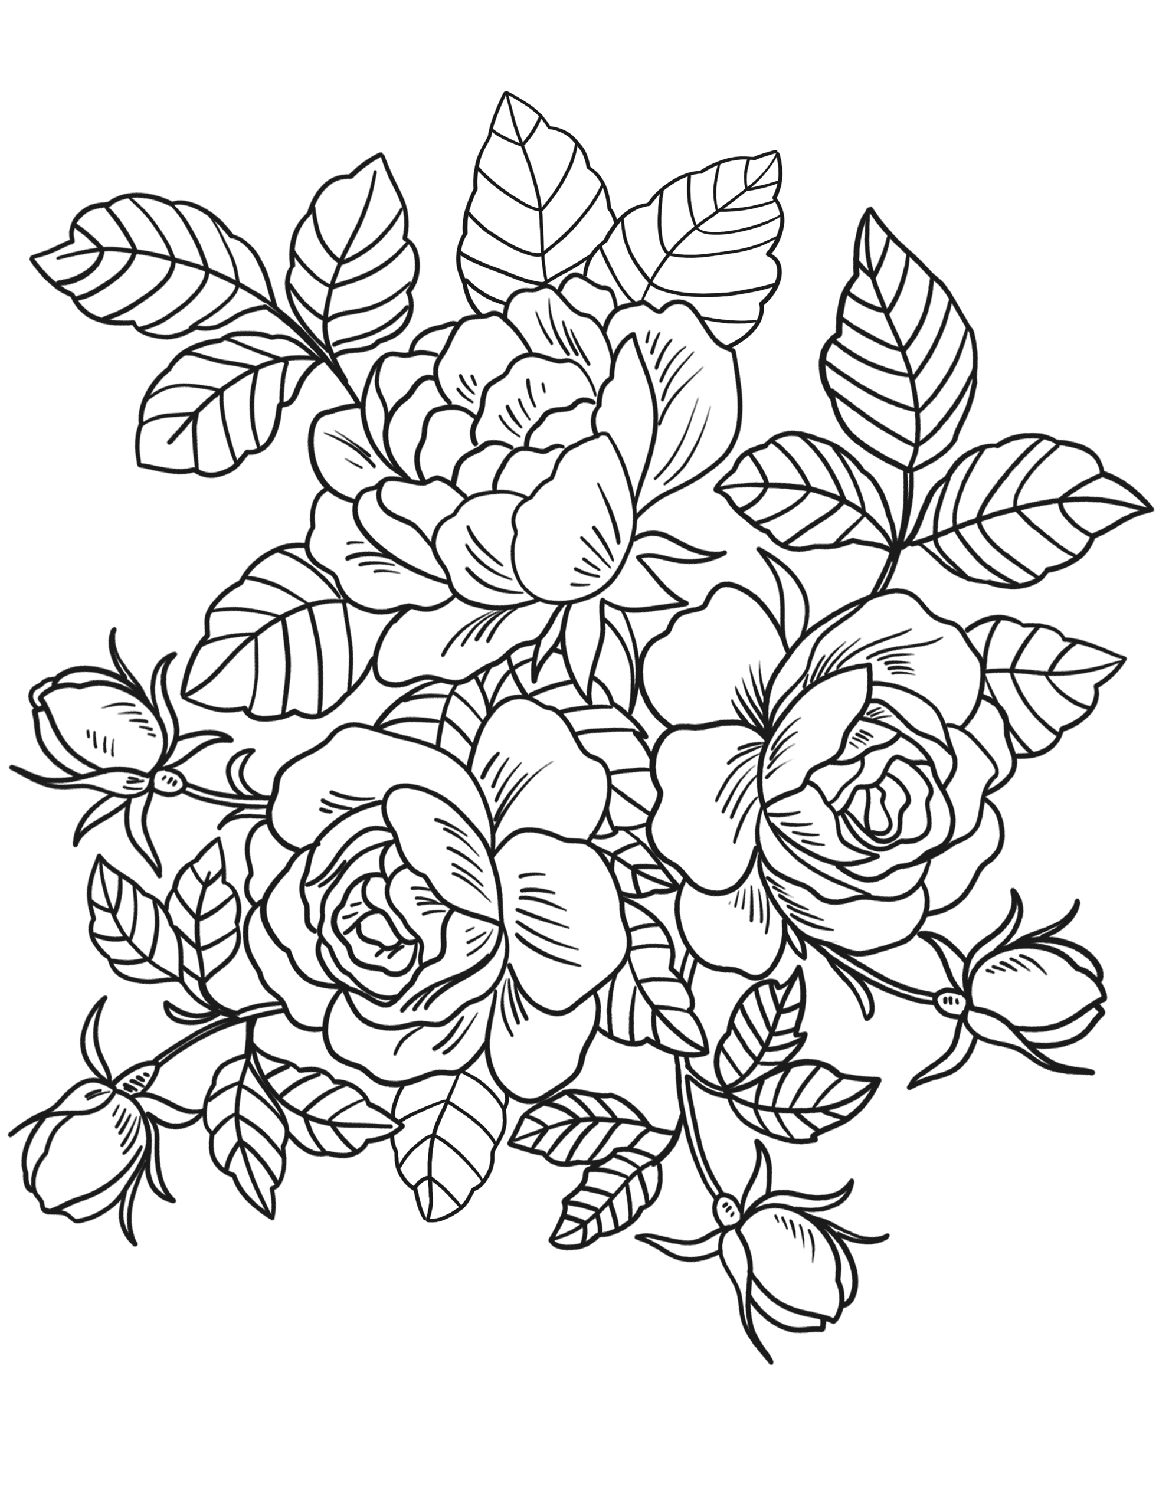 beautiful flowers coloring pages beautiful realistic flowers coloring page for kids flower coloring flowers pages beautiful